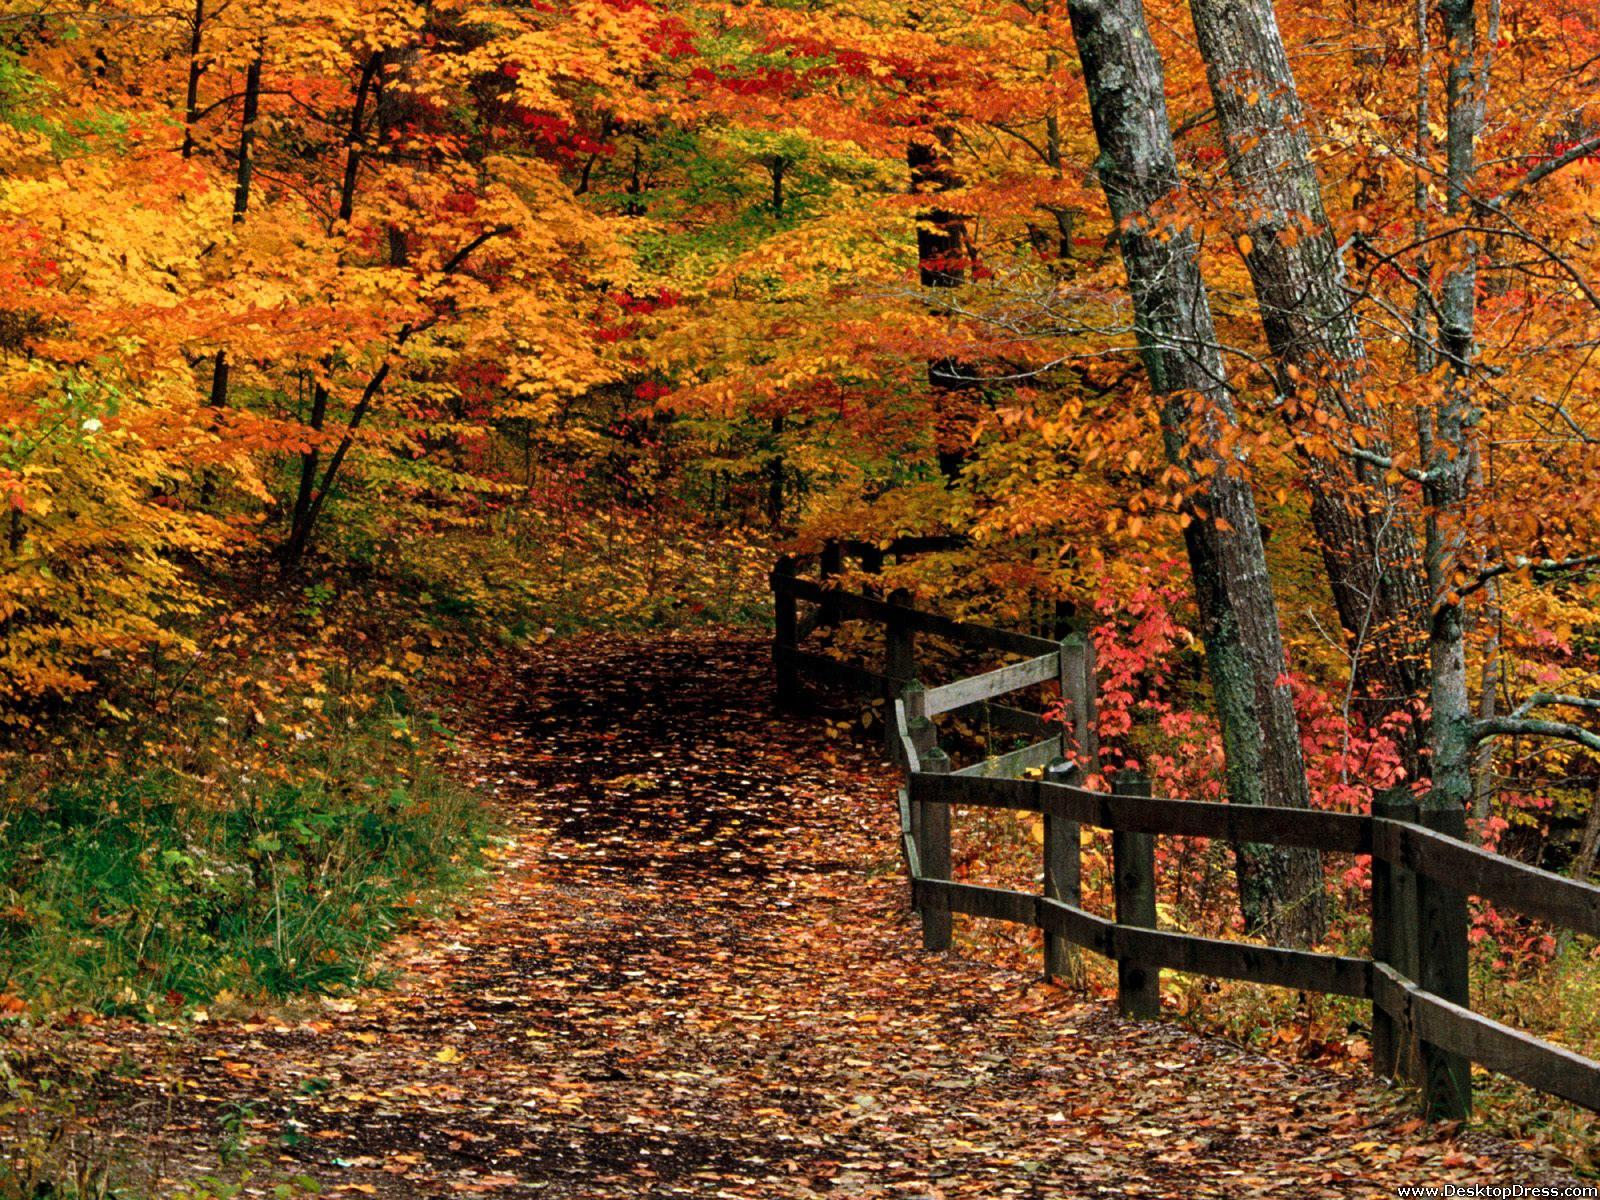 Desktop Wallpapers » Natural Backgrounds » Mccormick Creek State ...